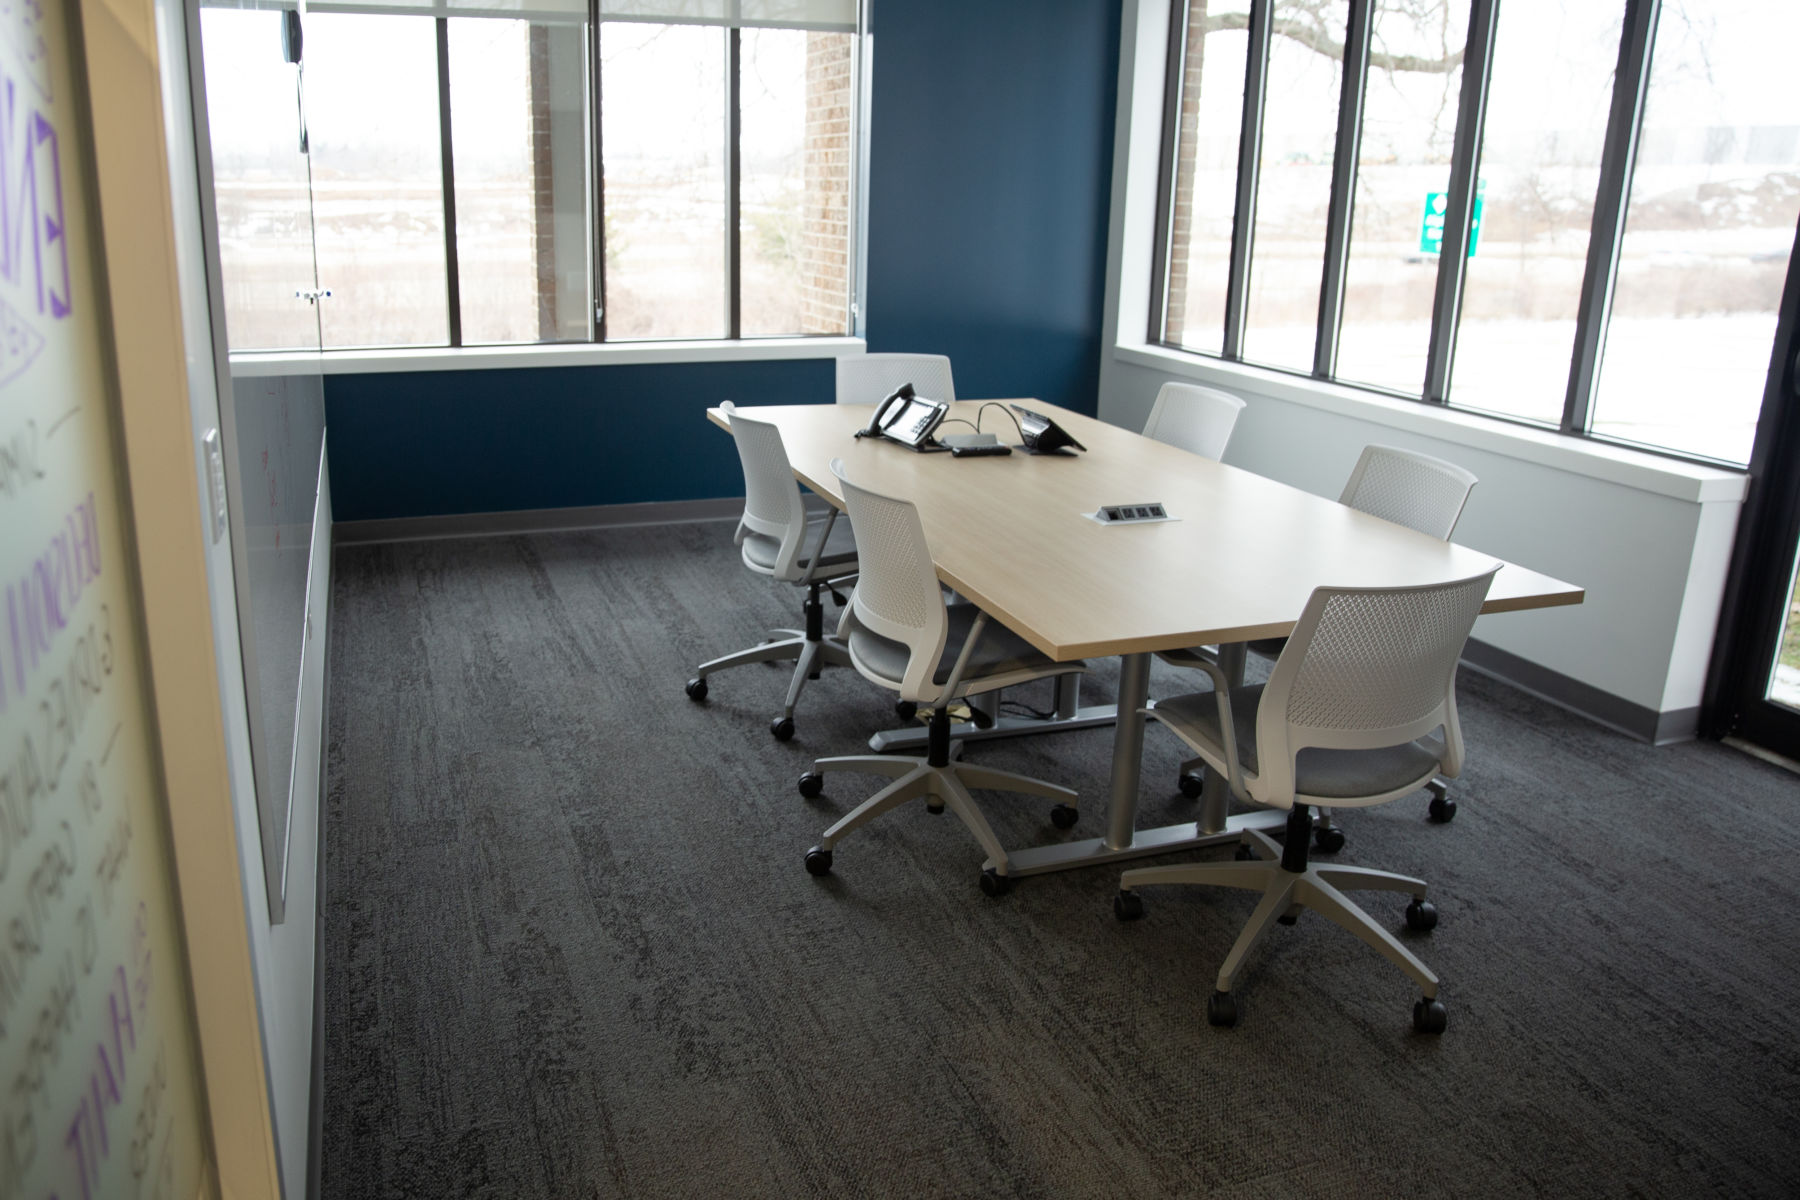 ITC Conference room